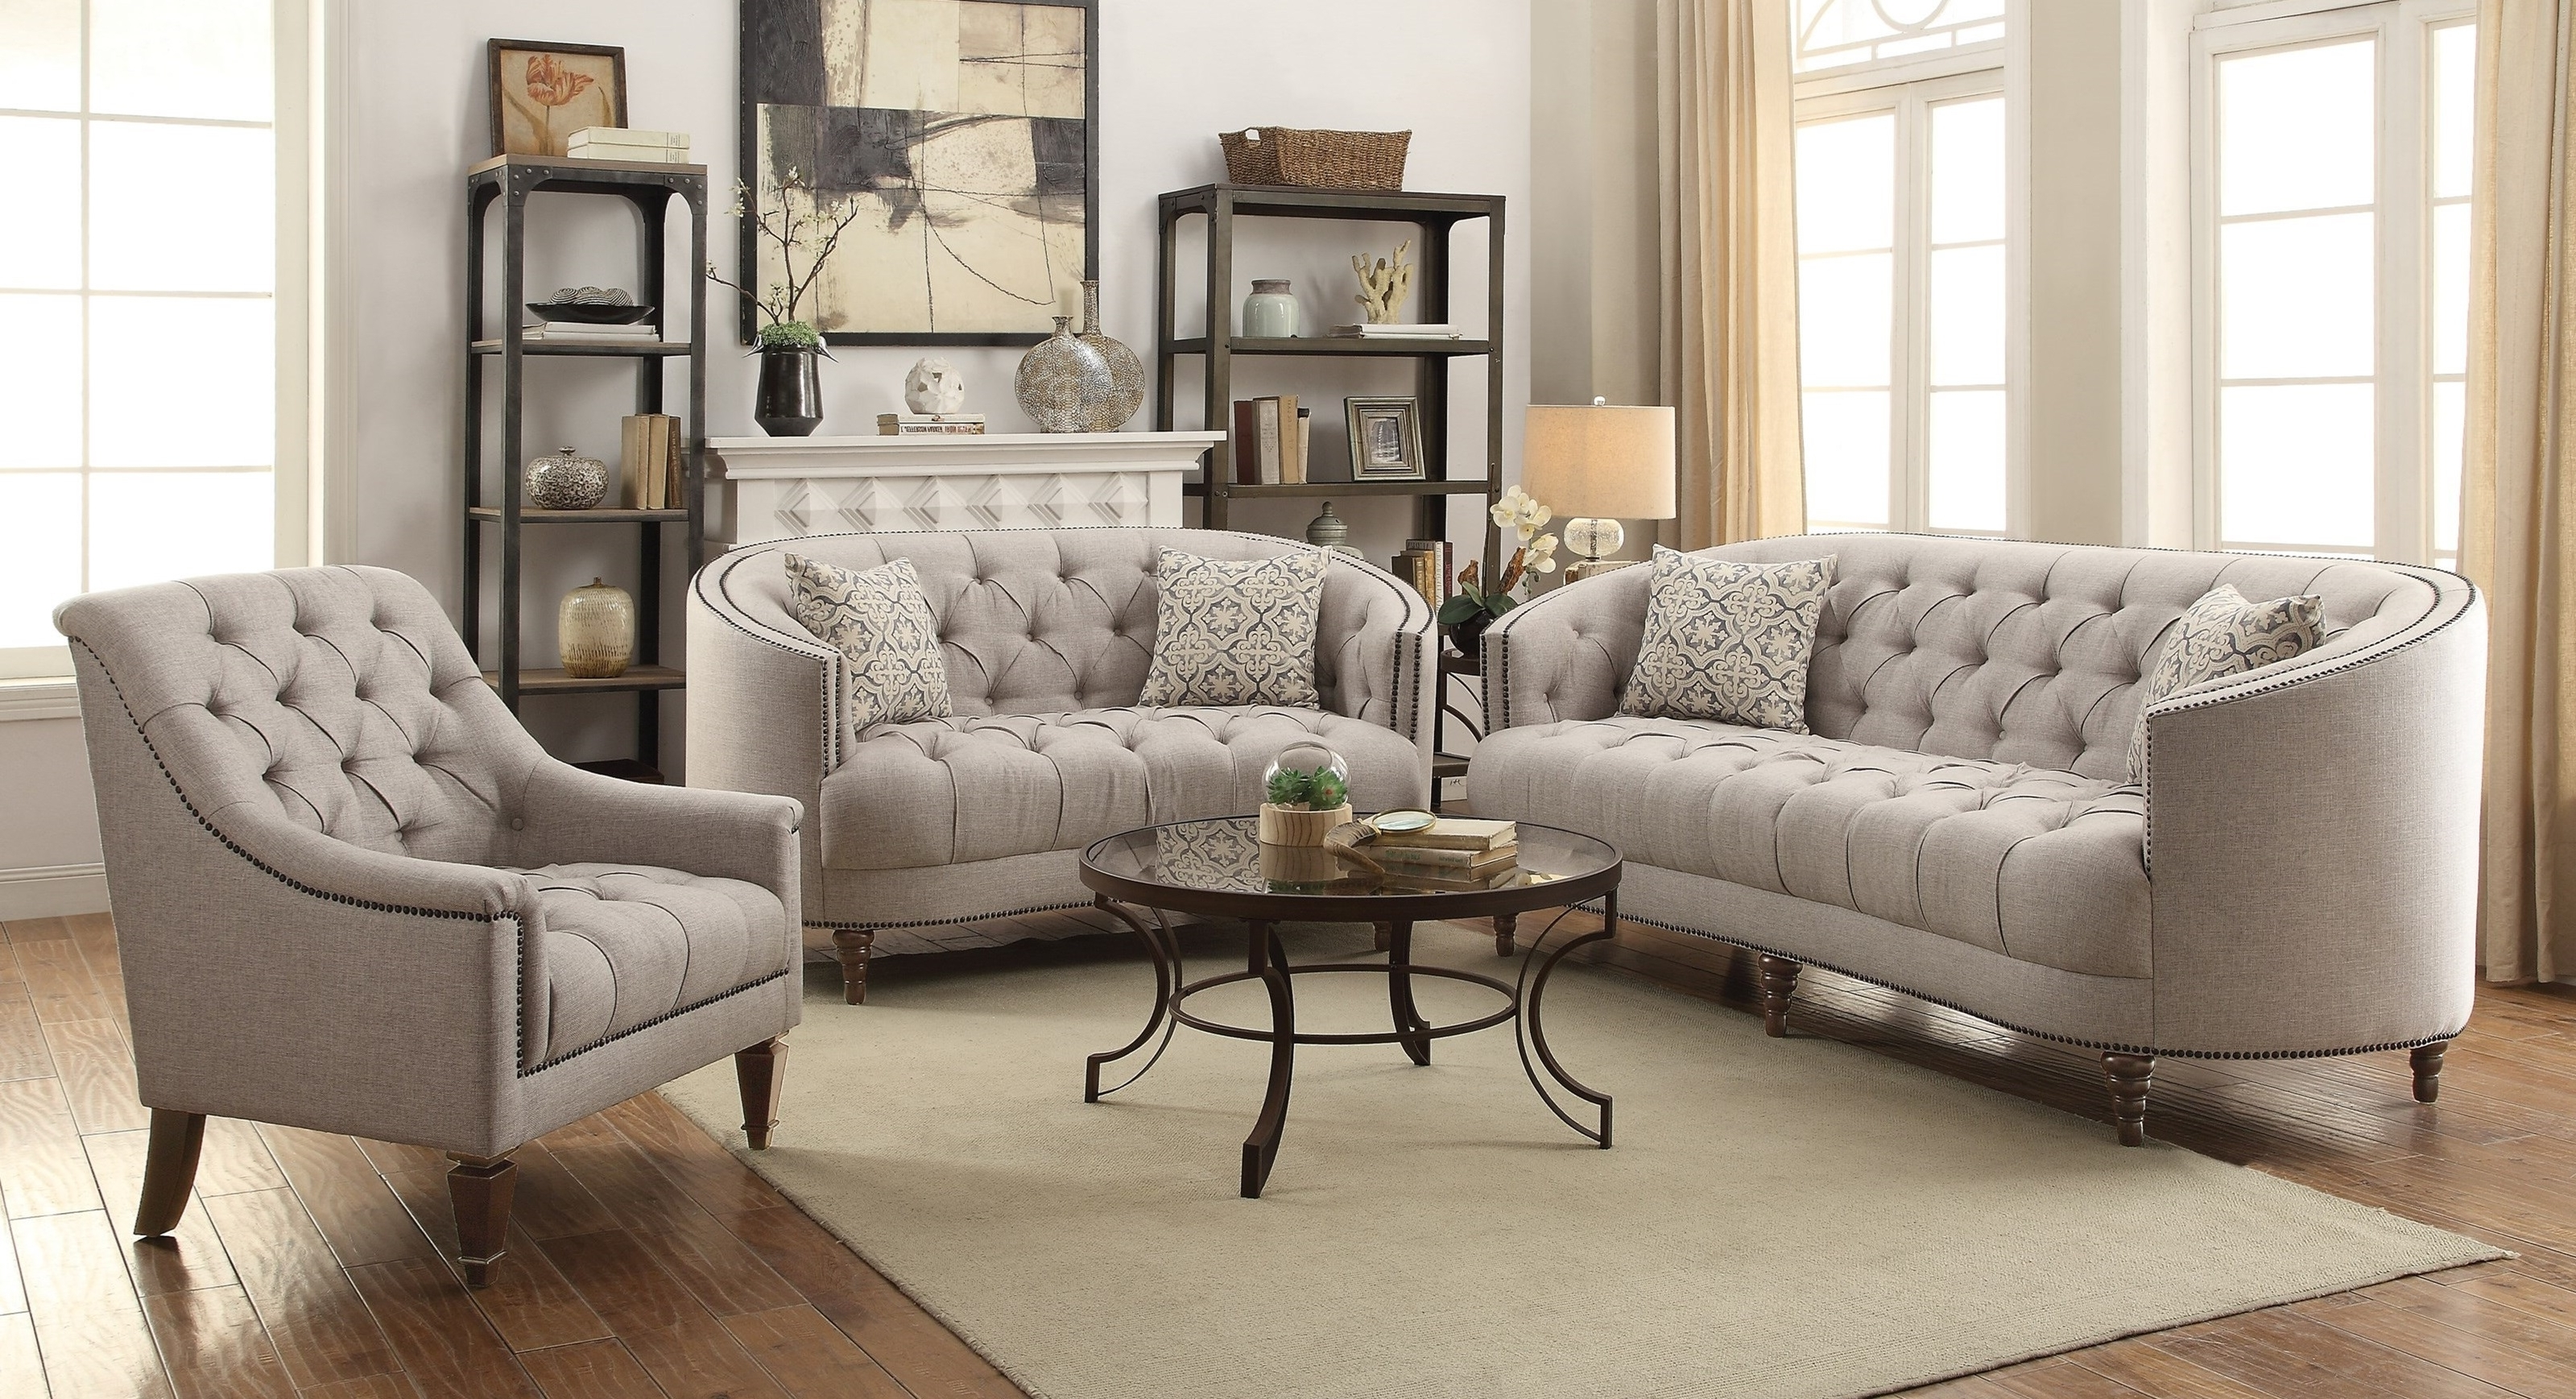 Avonlea Sofa And Chair Set – 505641 With Regard To Famous C Shaped Sofas (View 5 of 15)